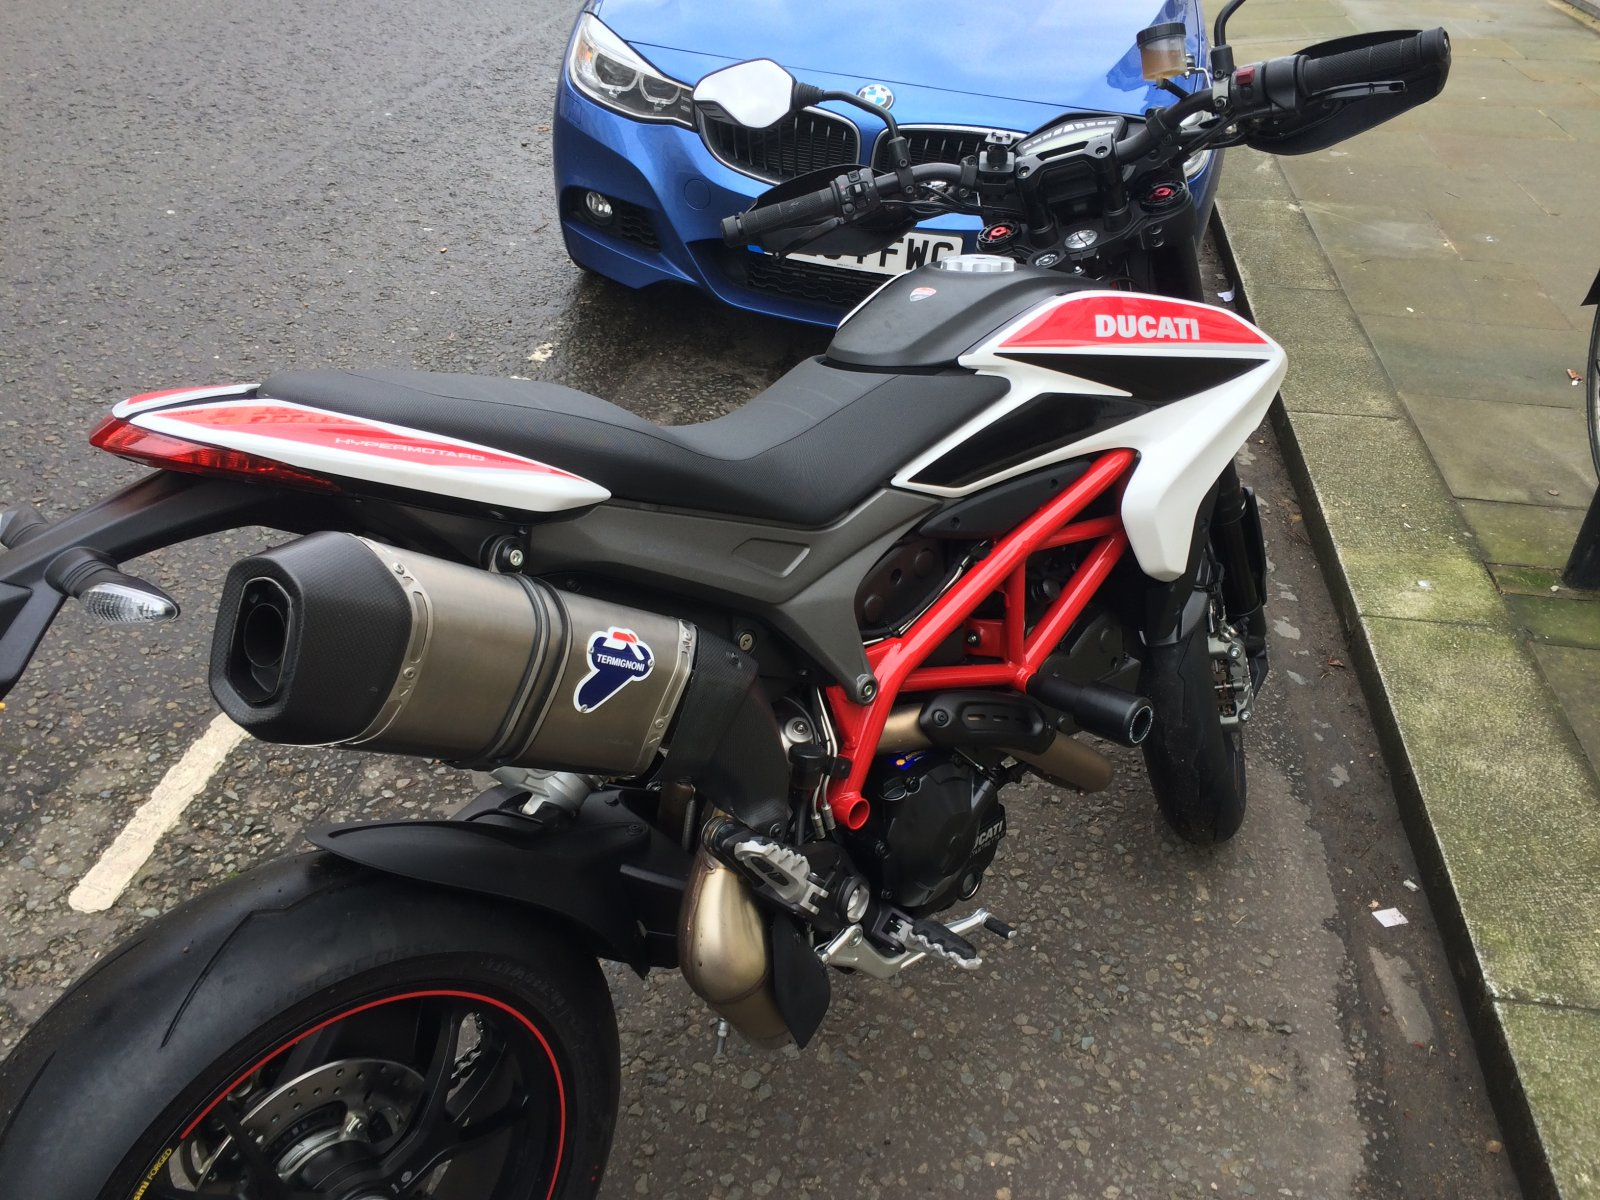 for sale high termignoni exhaust for hypermotard 821 slip on ducati forum. Black Bedroom Furniture Sets. Home Design Ideas